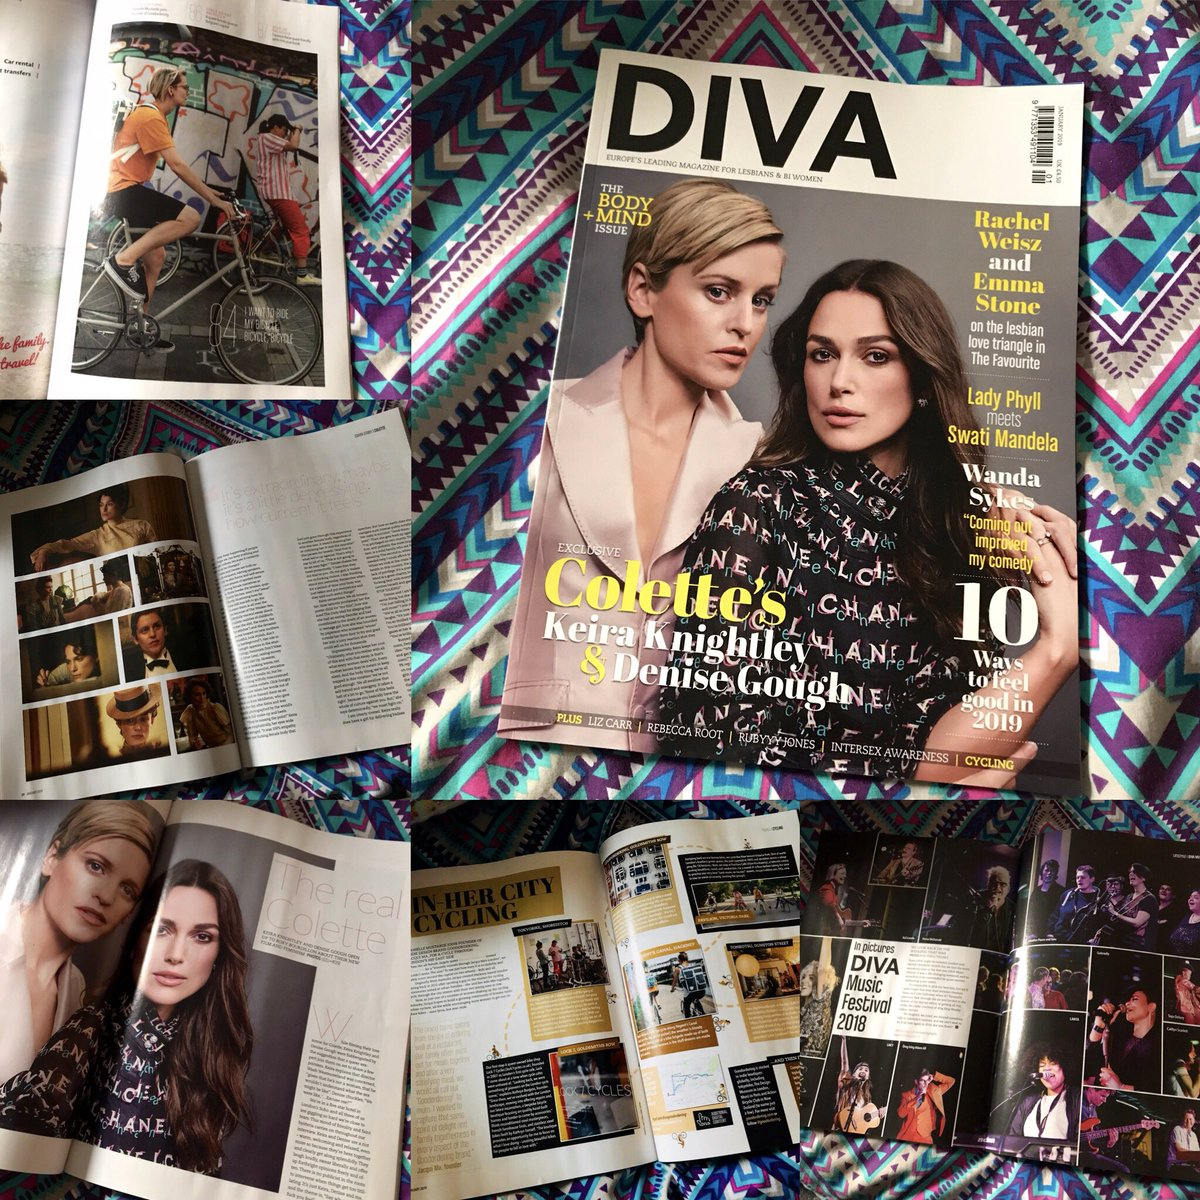 Queermas has come early, as the new incredible issue of @DIVAmagazine has arrived! Such beautiful writing from @Roxy_Vintage , @daniellejournal & #TeamDiva! I can't wait to see @ColetteMovie & reading the interview with #KeiraKnightley & #DeniseGough makes me even more excited!🌈